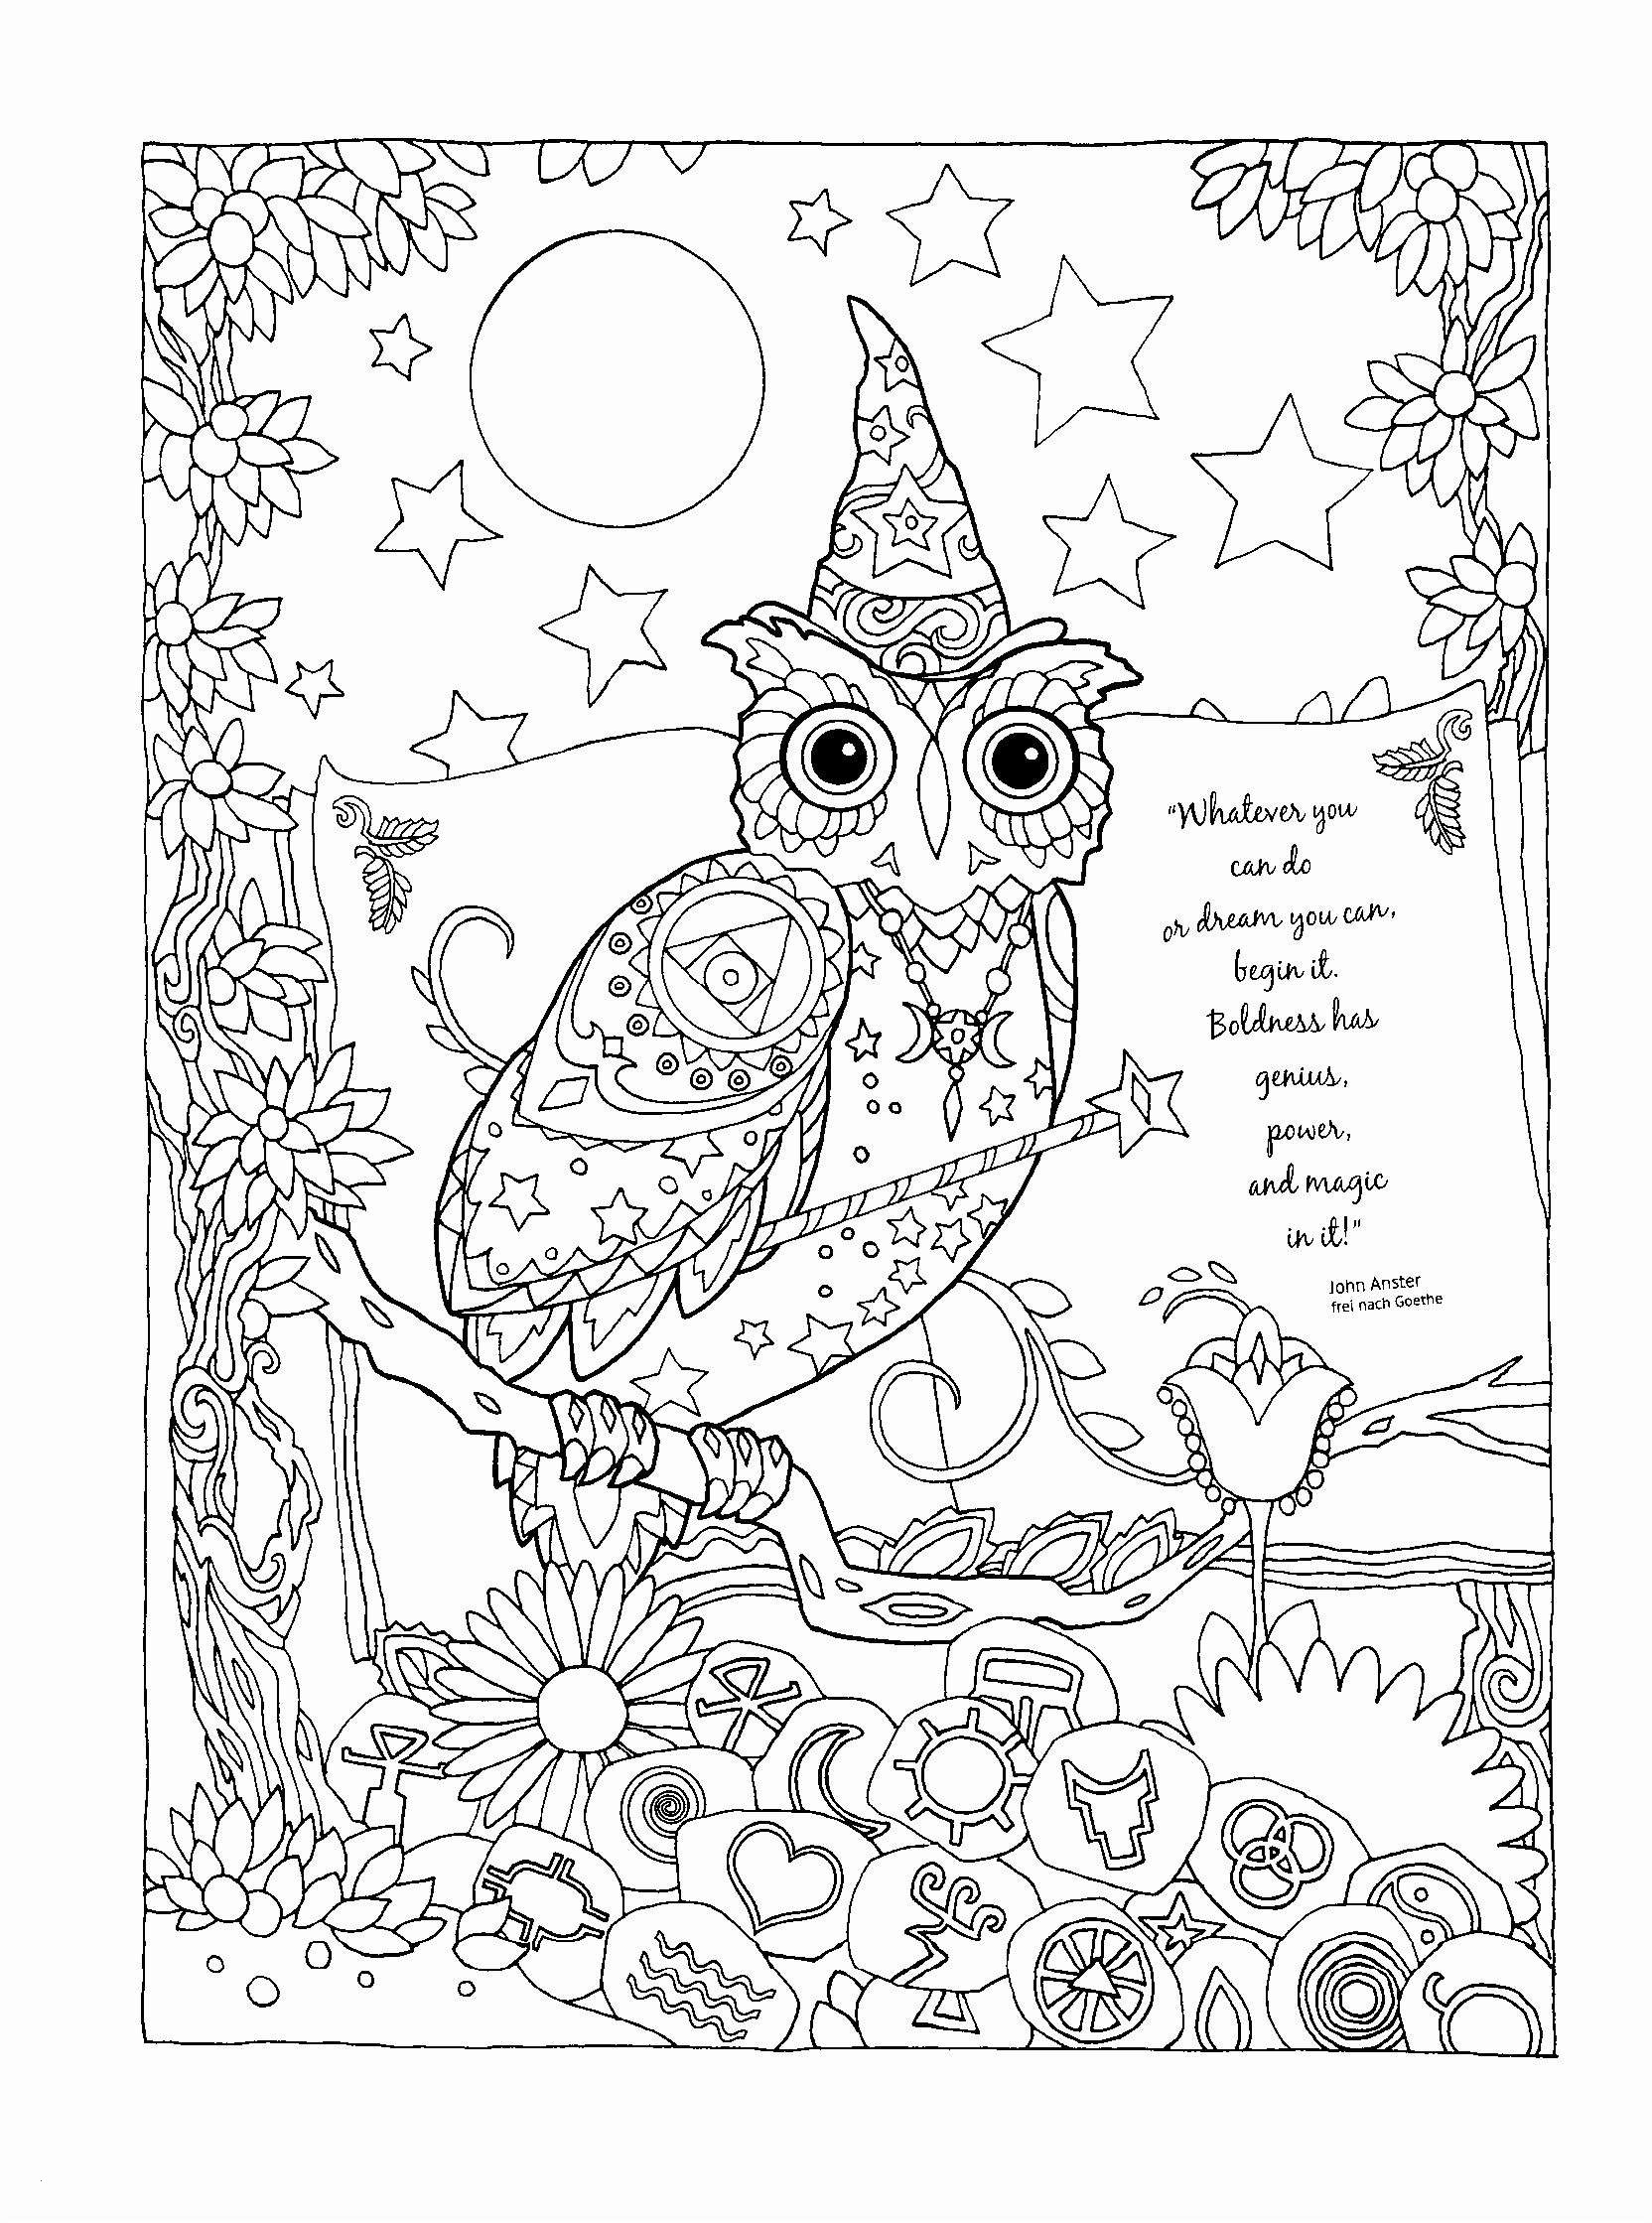 coloring pages that you can color online Download-Mickey Mouse Xmas Coloring Pages Mickey Mouse Christmas Coloring Schön Malvorlagen Mickey Mouse Wunderhaus 4-j